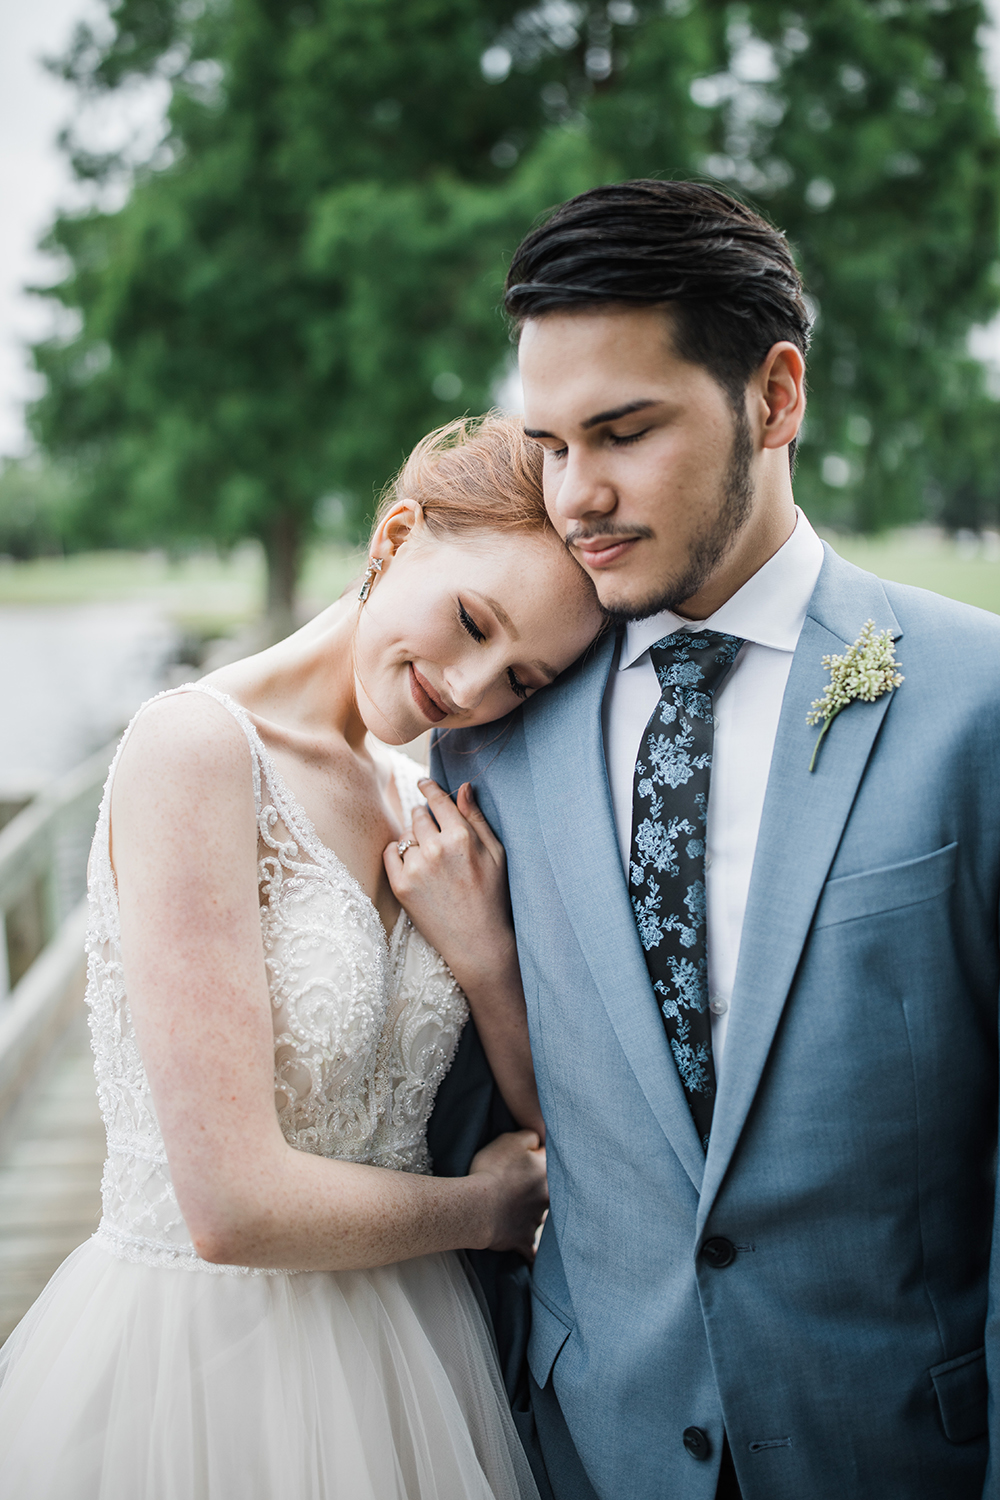 Timeless Blue Wedding Inspiration | photo by Ash Simmons Photography | featured on I Do Y'all